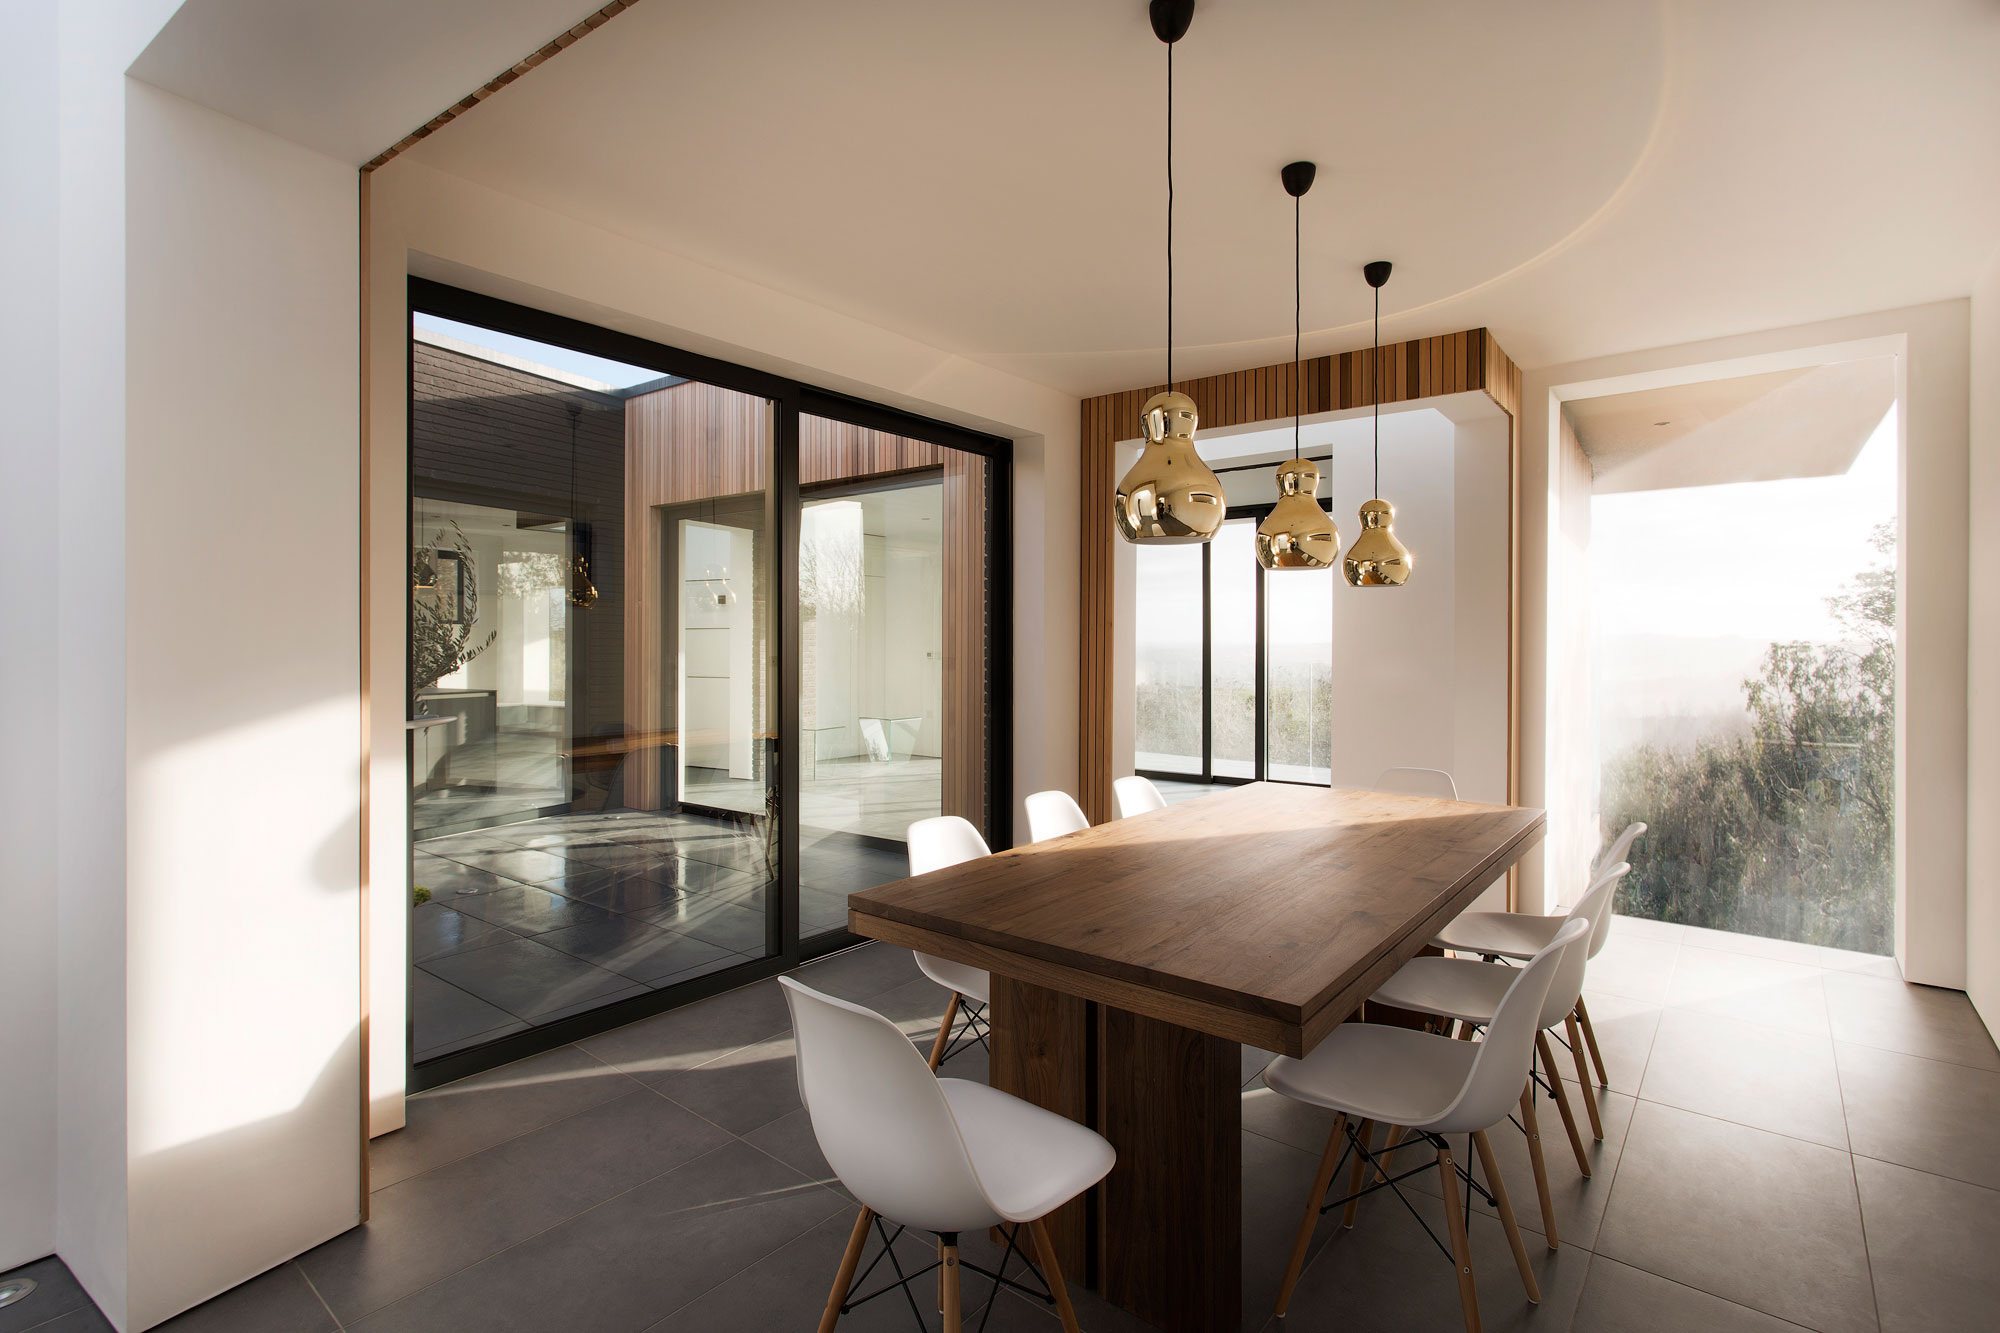 Dining Table, Patio Doors, Gold Pendant Lights, Modern Home In Hampshire,  England